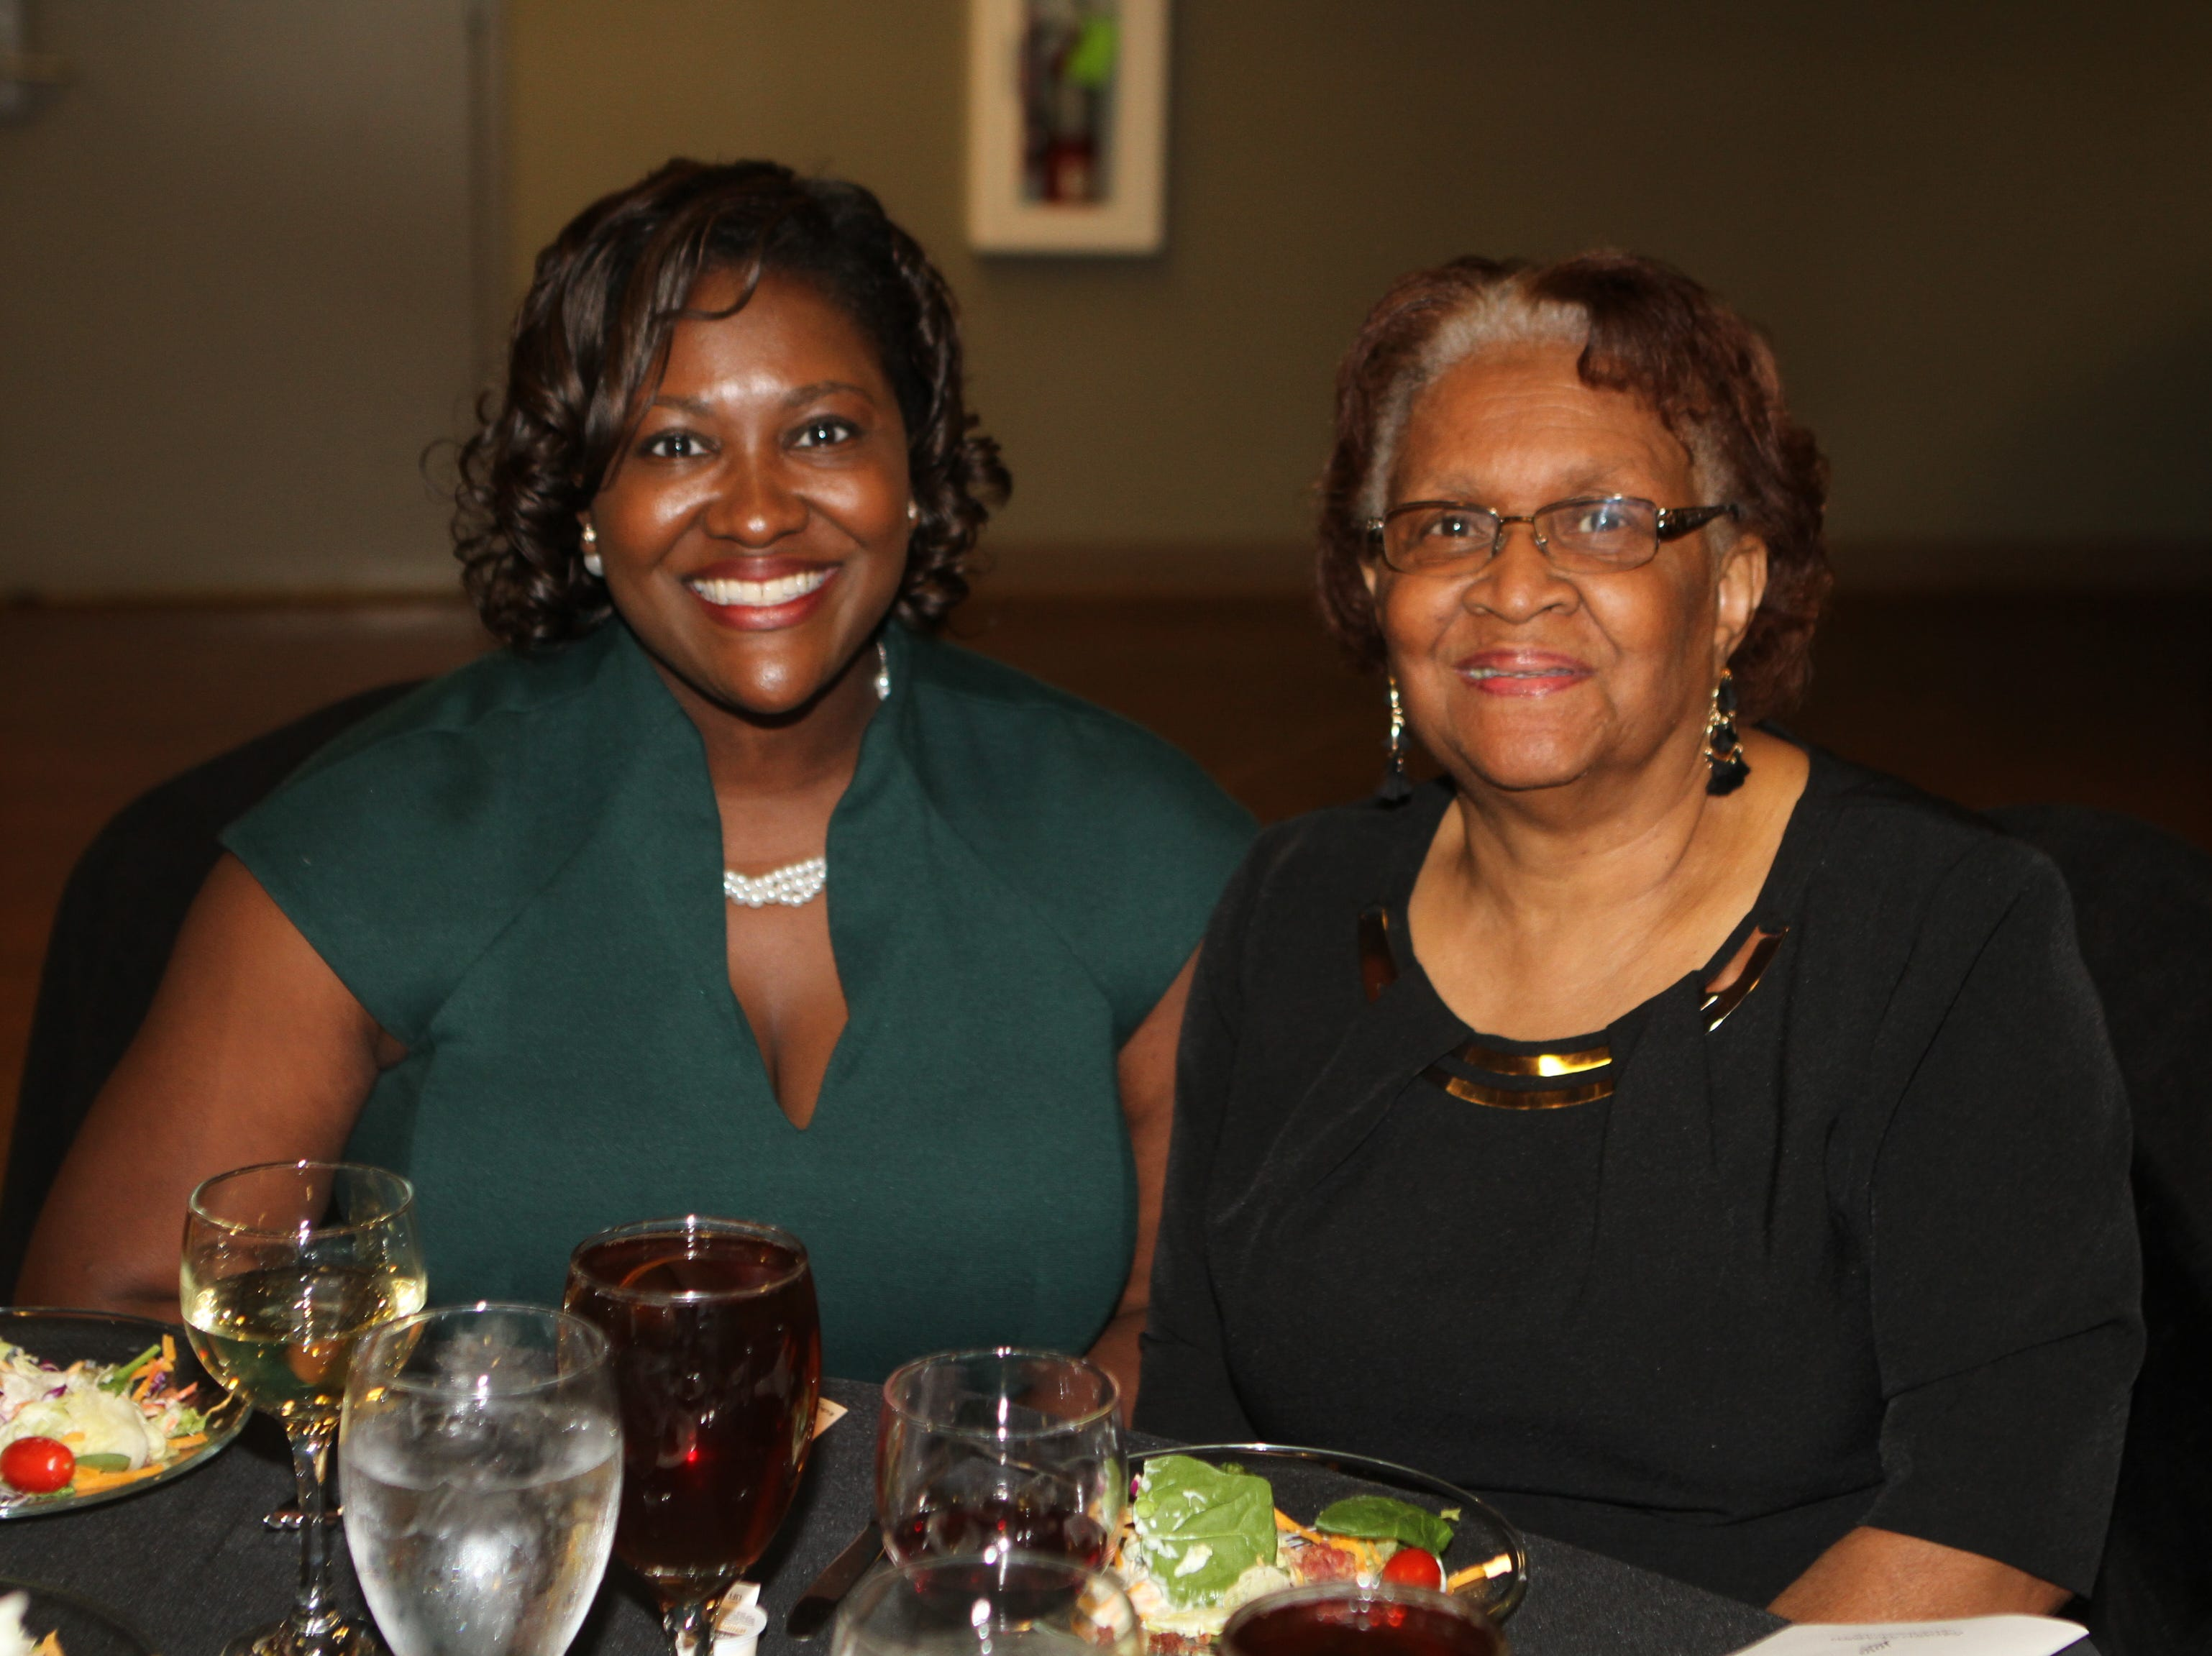 Gail Young and Bennie Russell at CMC Education Foundation's annual fundraiser Vision to Reality on Friday, November 2, 2018